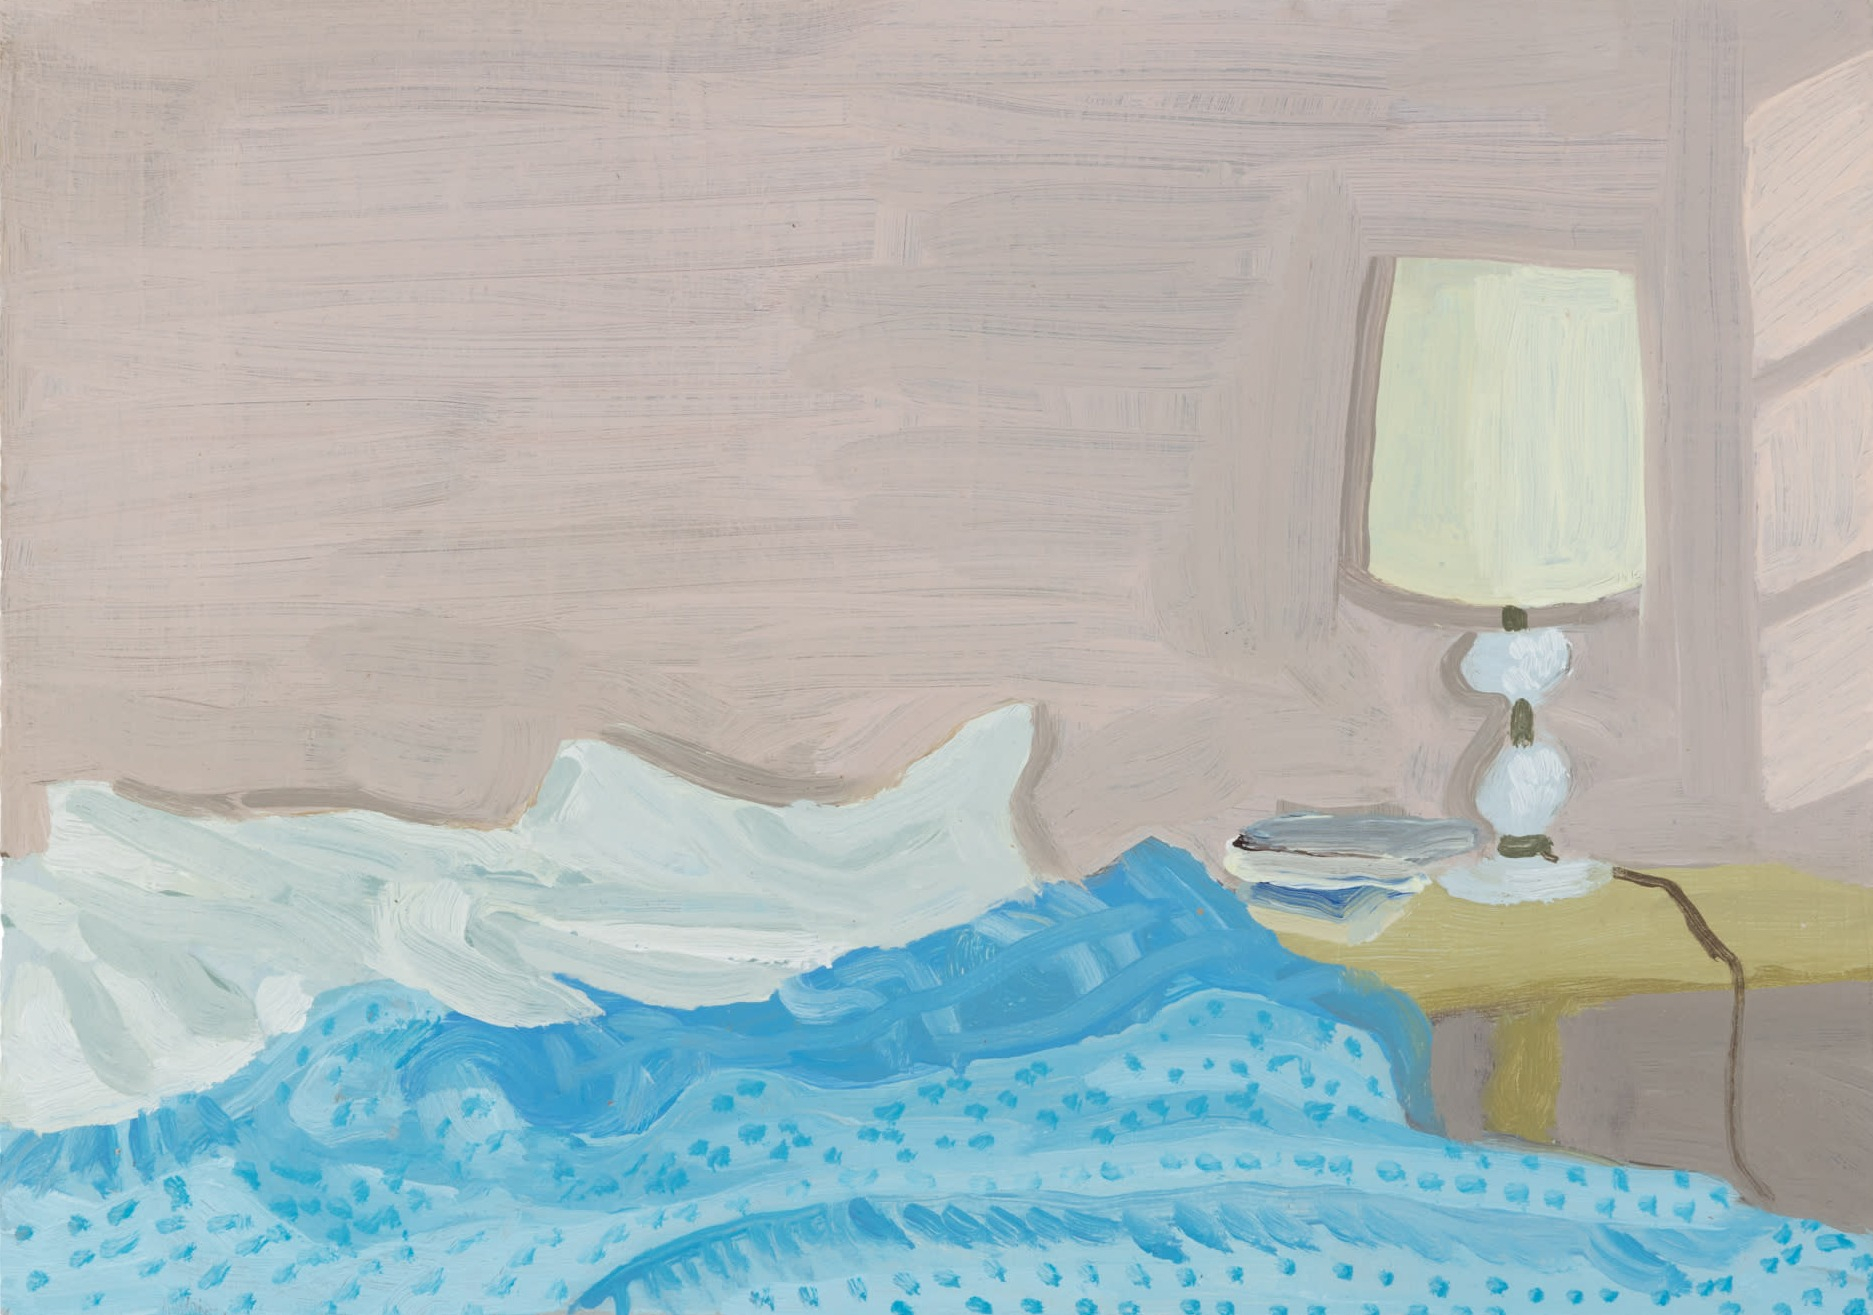 A painting by Claudia Keep titled September Morning, dated 2020.